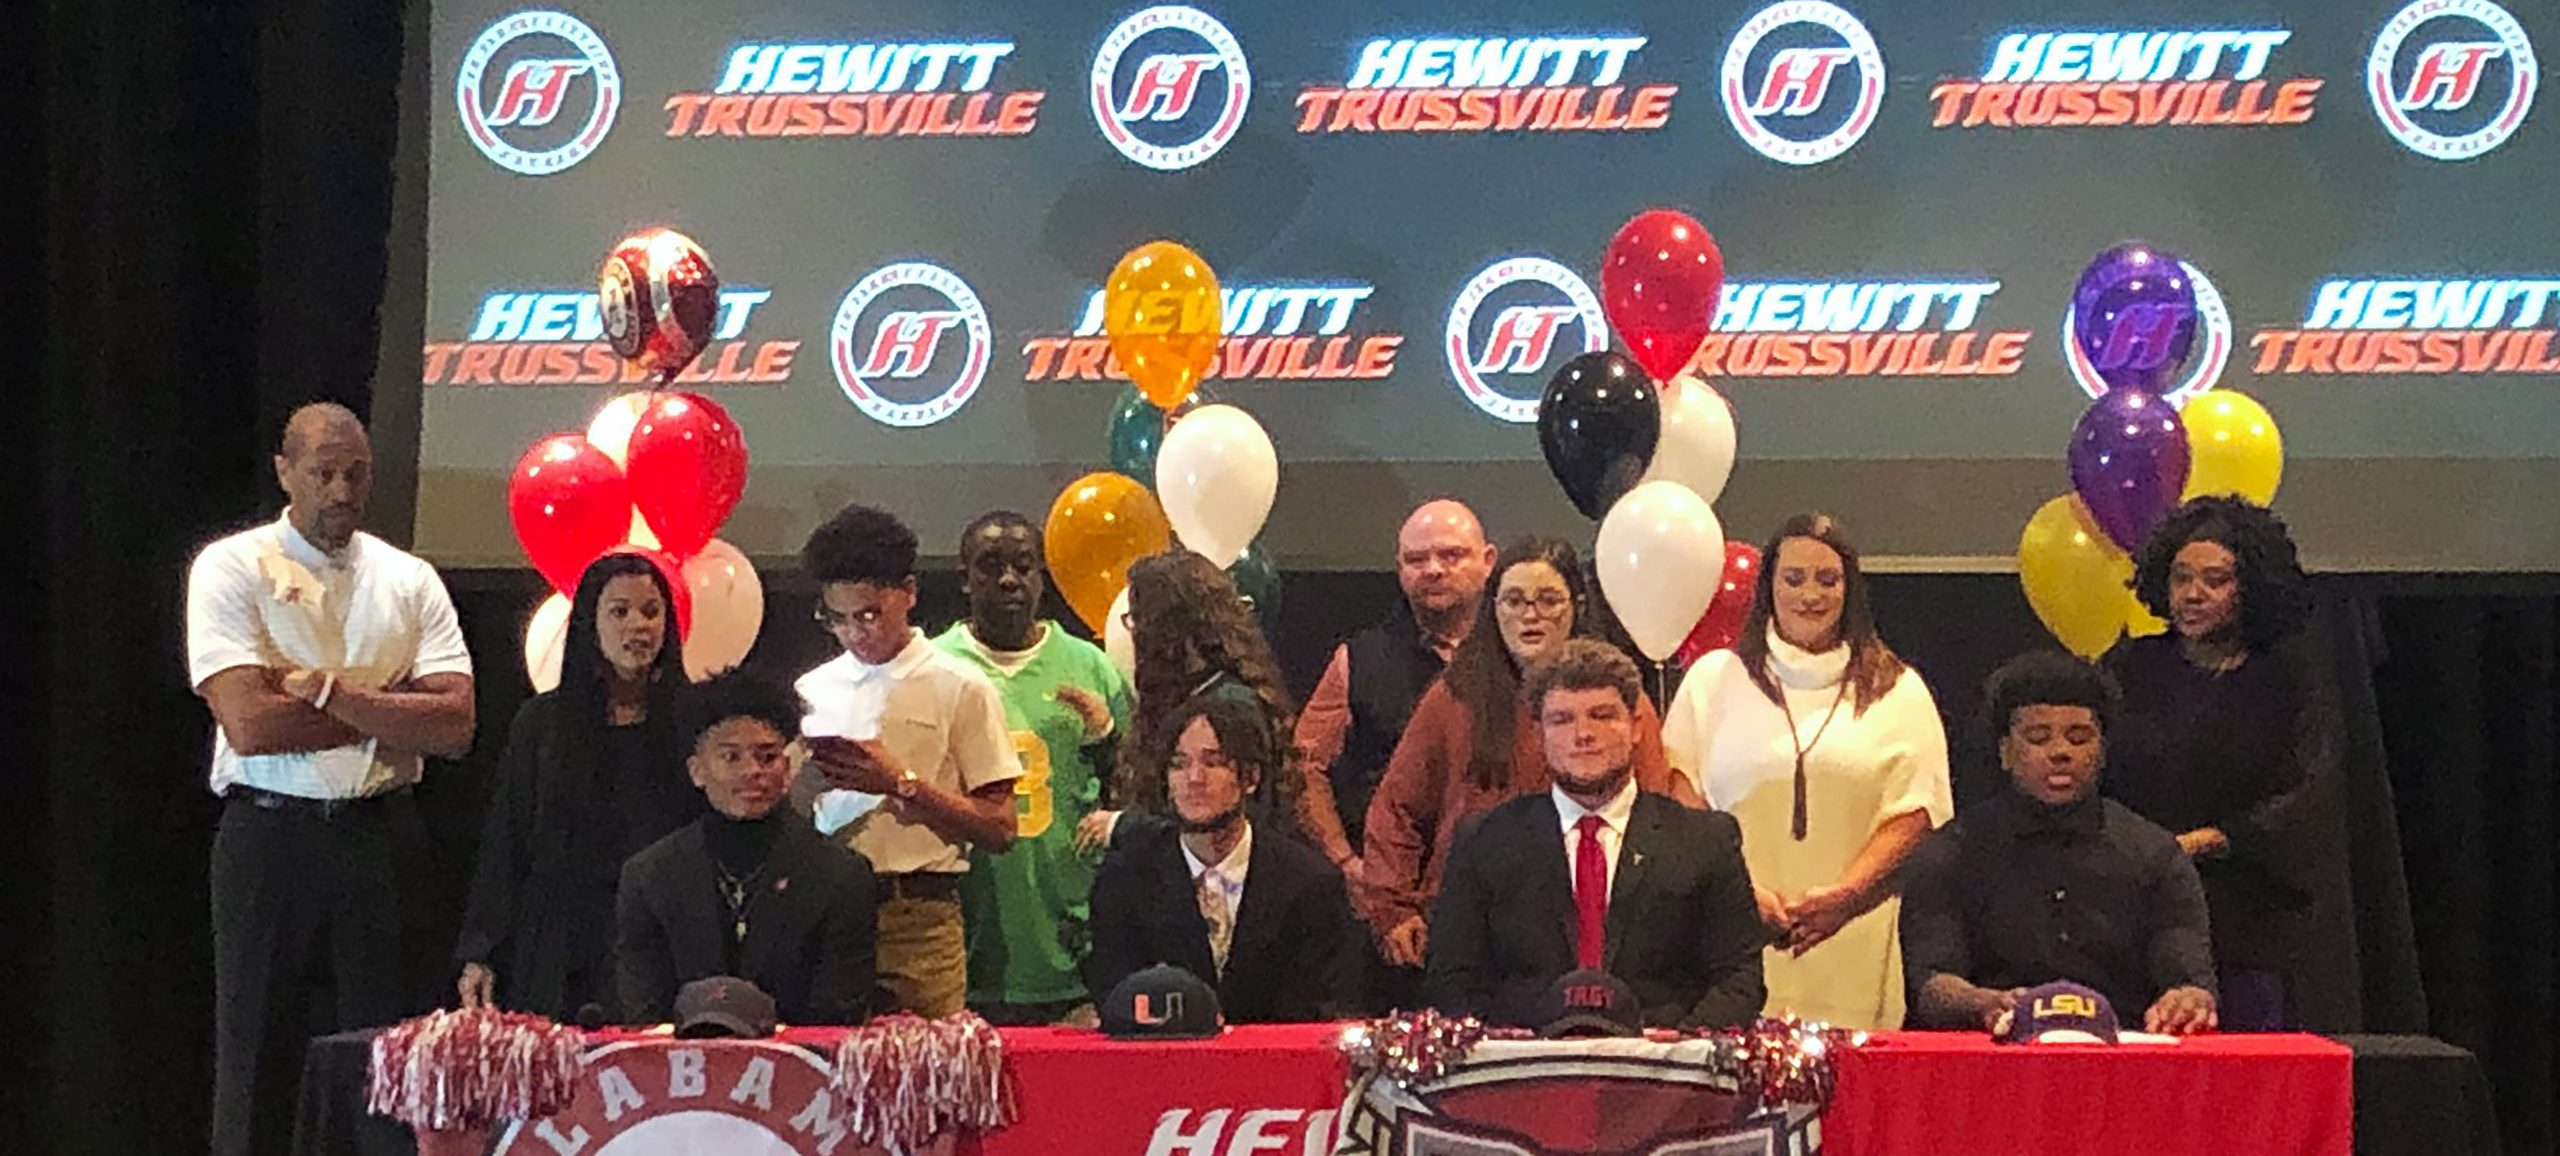 National Signing Day: Hewitt-Trussville continues run of sending athletes to top colleges as 4 sign letters of intent